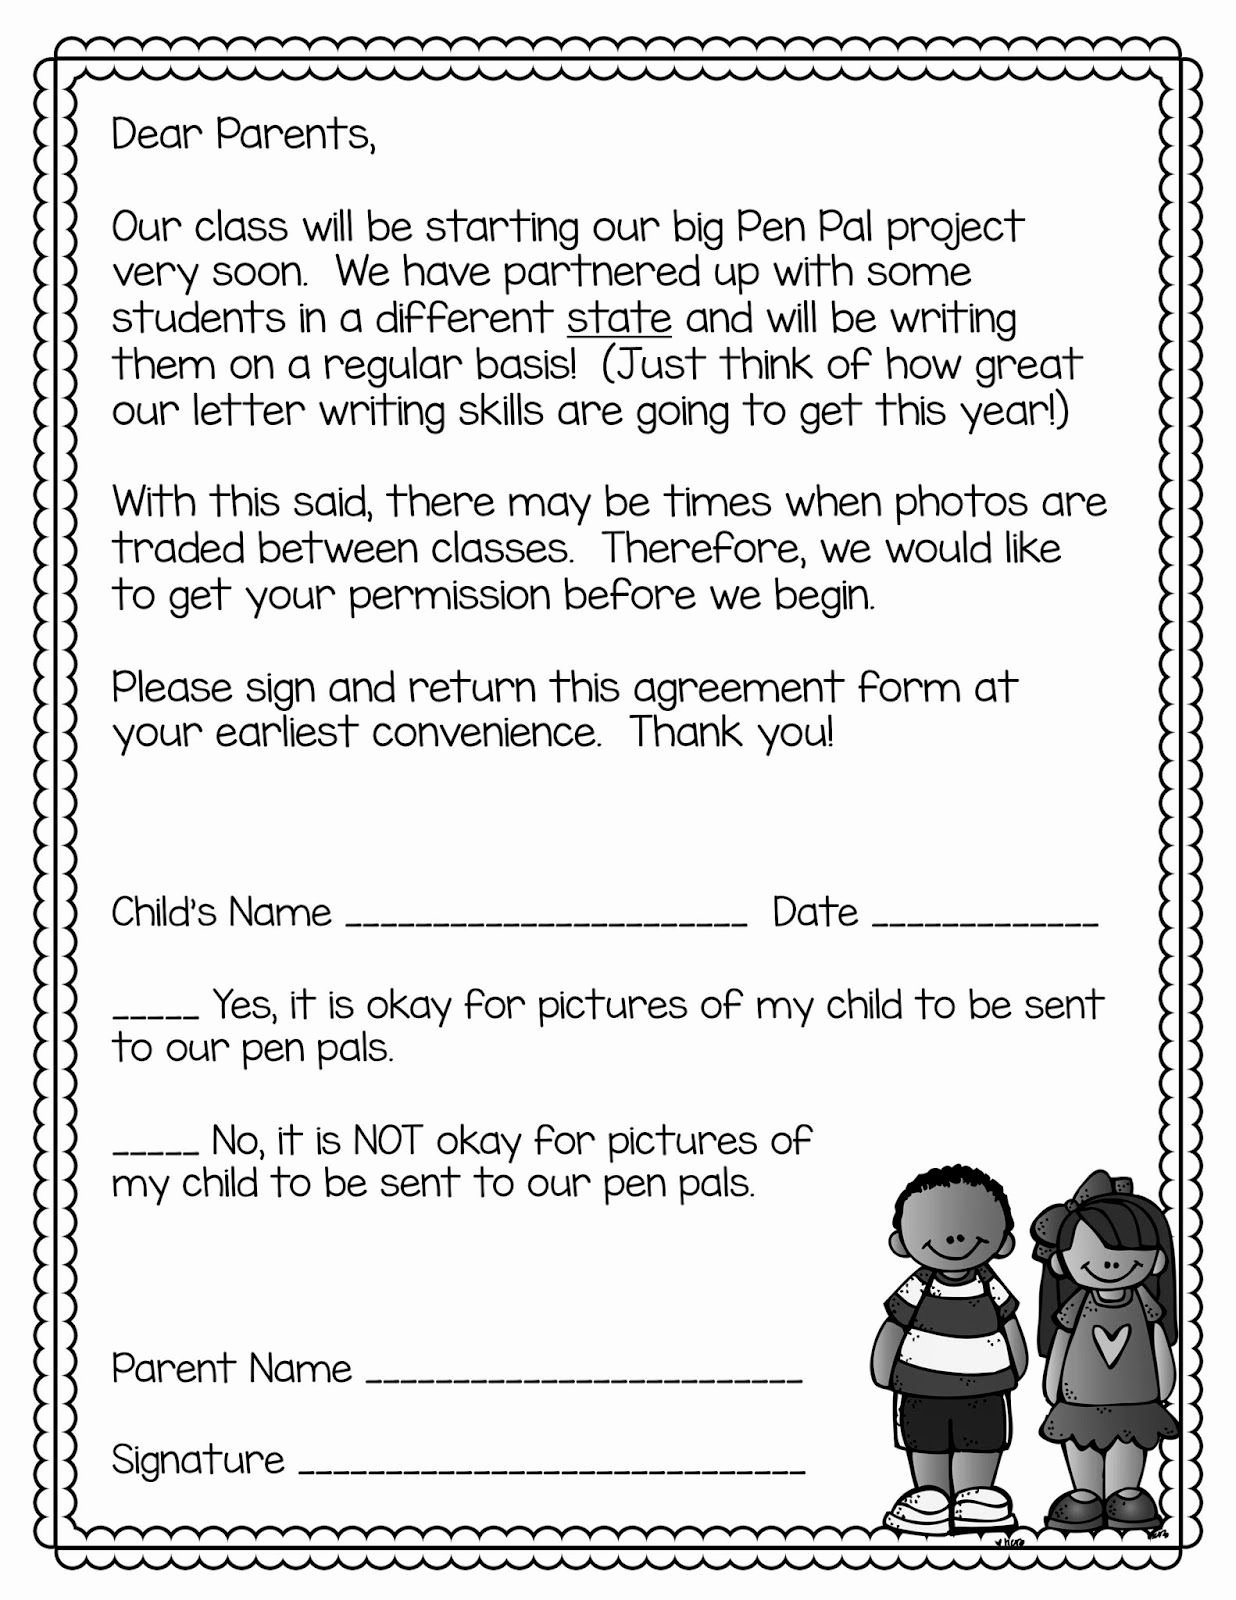 Pen Pal Letter Template Best Of Classroom Pen Pals Tips and Tricks for the Year